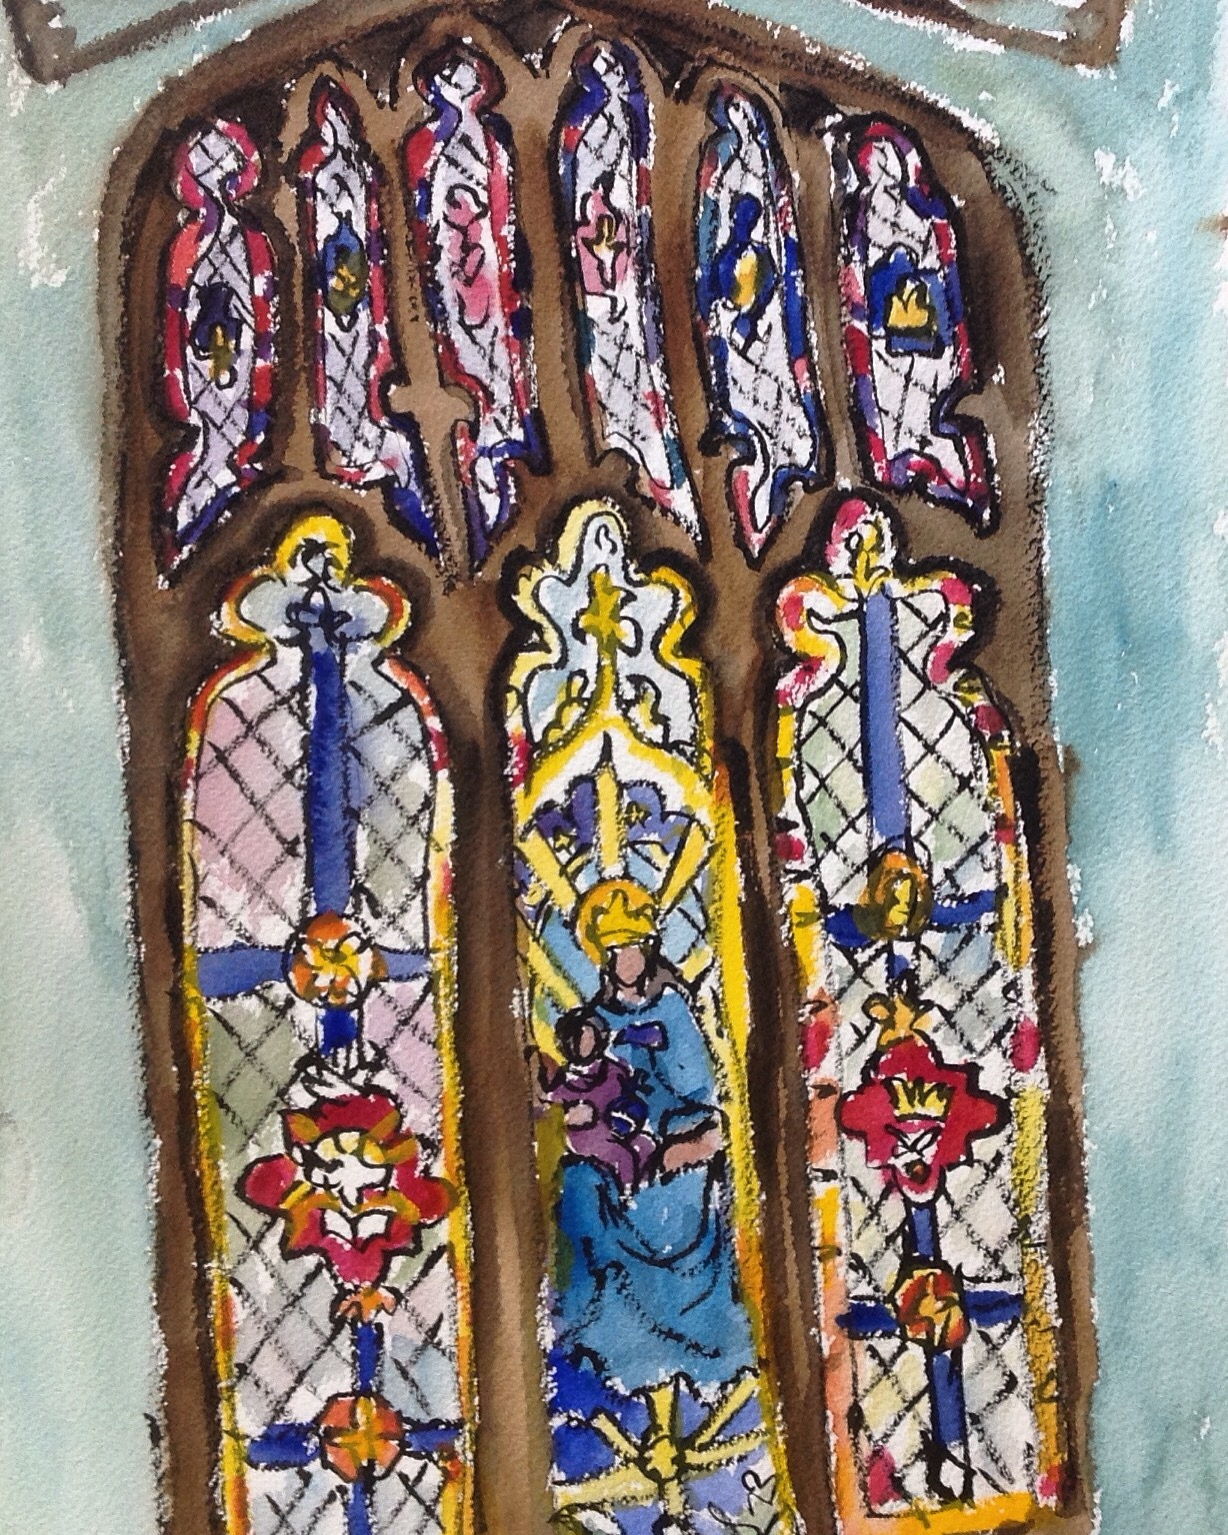 """Sketched this while sitting on a pew. I wonder if painting in a chapel is considered sacrilegious? I doubt it since a service wasn't going on and I was surrounded by so much art aimed at beautifying the chapel (""""glorifying god"""" is probably how it would be termed)."""